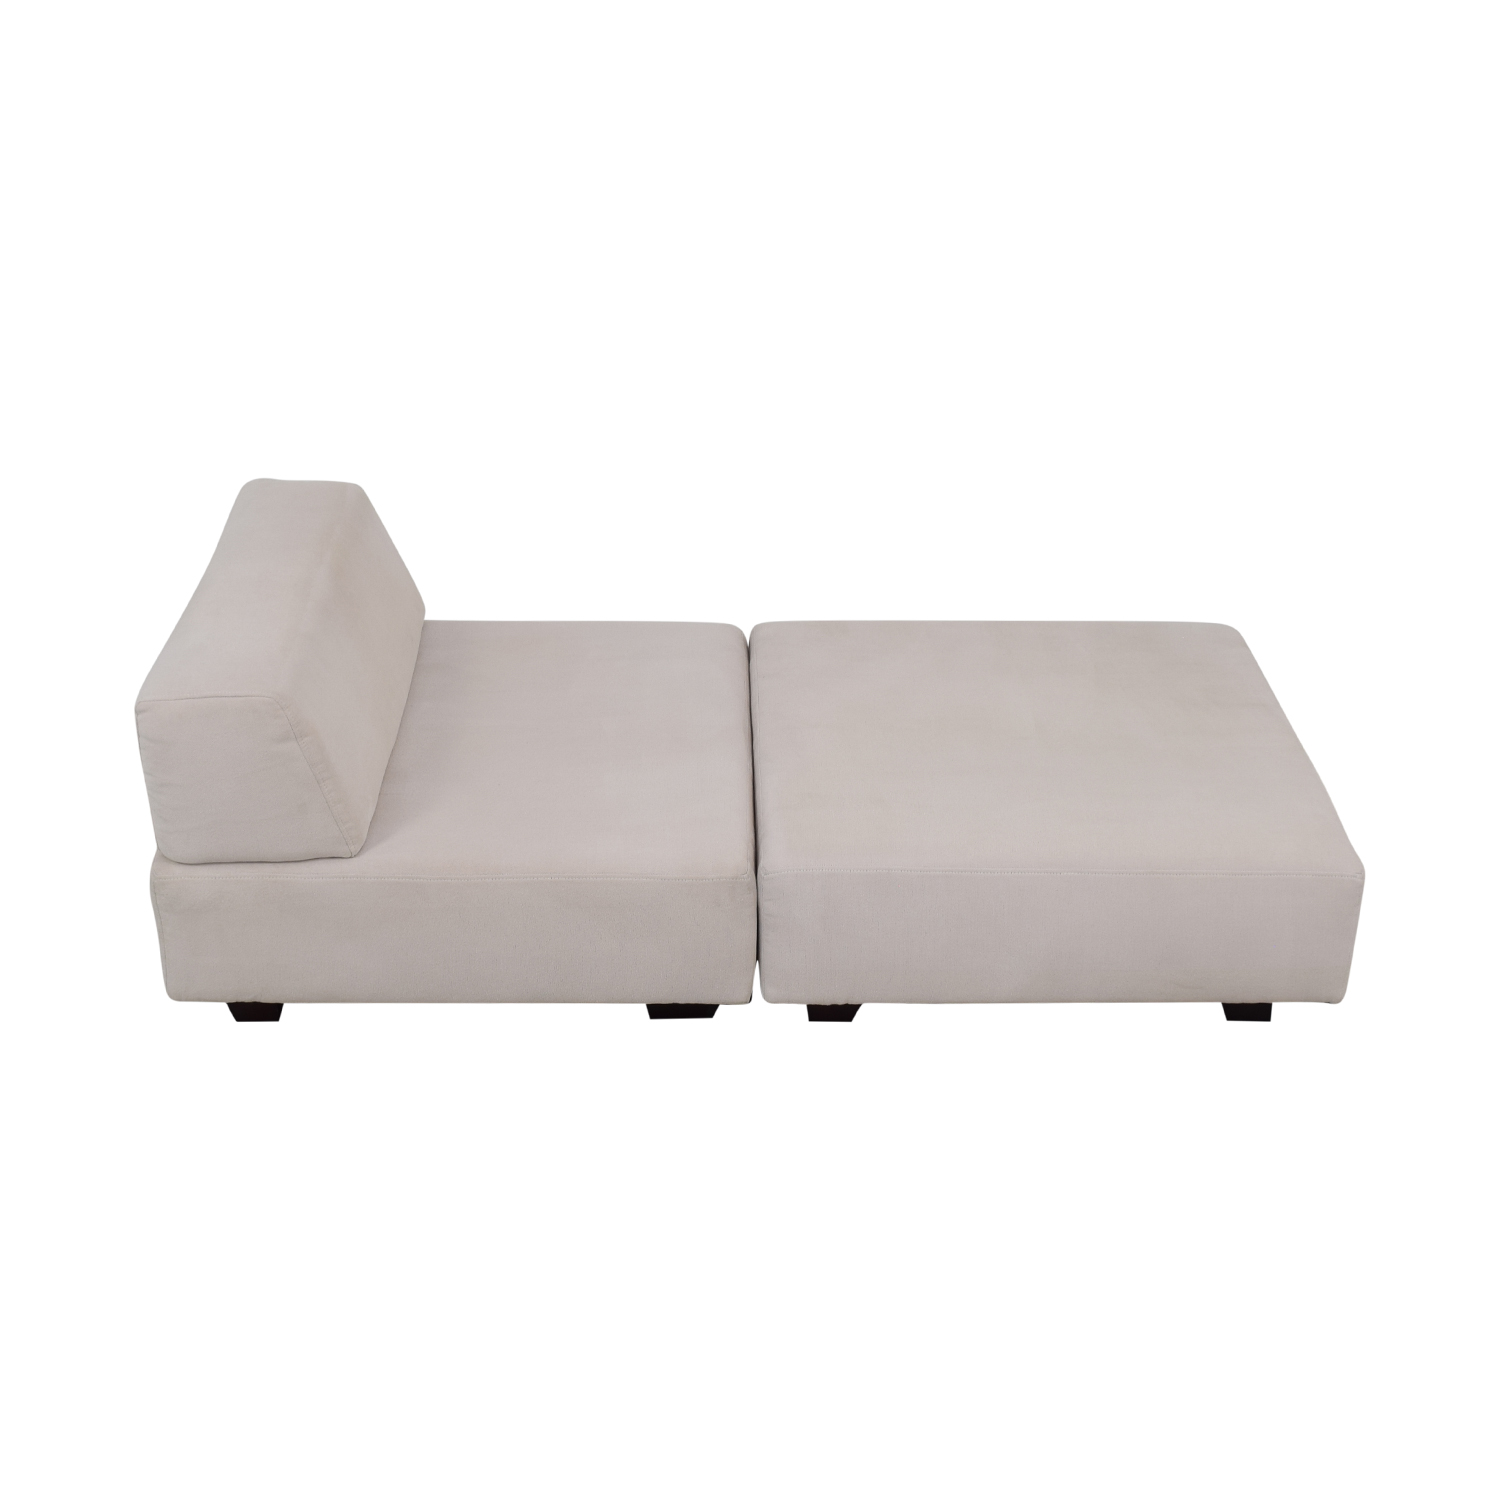 West Elm West Elm Tillary White Chaise Lounge discount